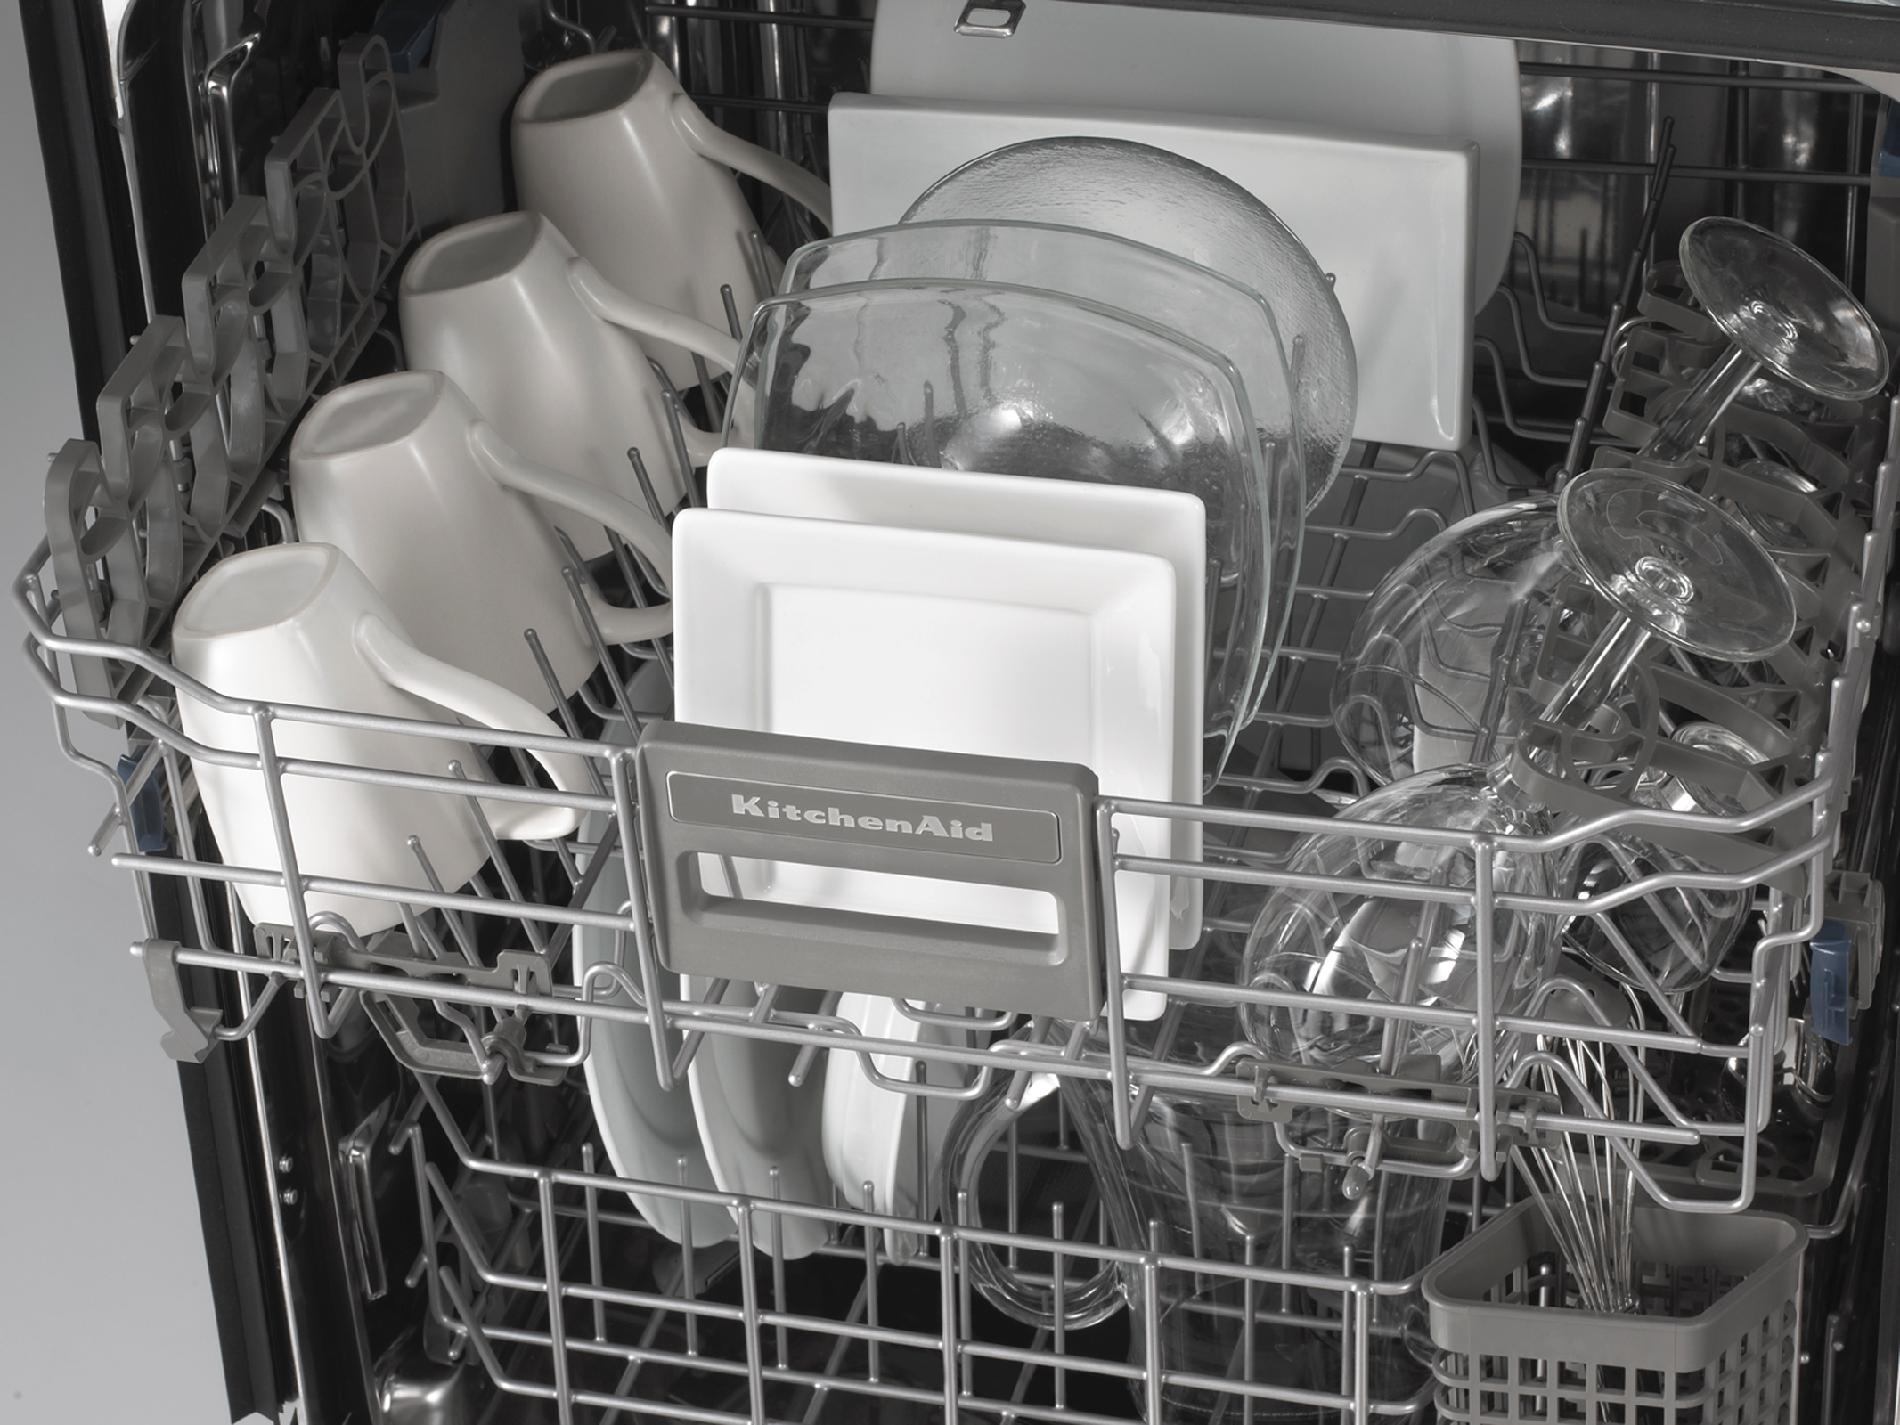 "KitchenAid 24"" Superba® EQ Built-In Dishwasher - Stainless Steel"